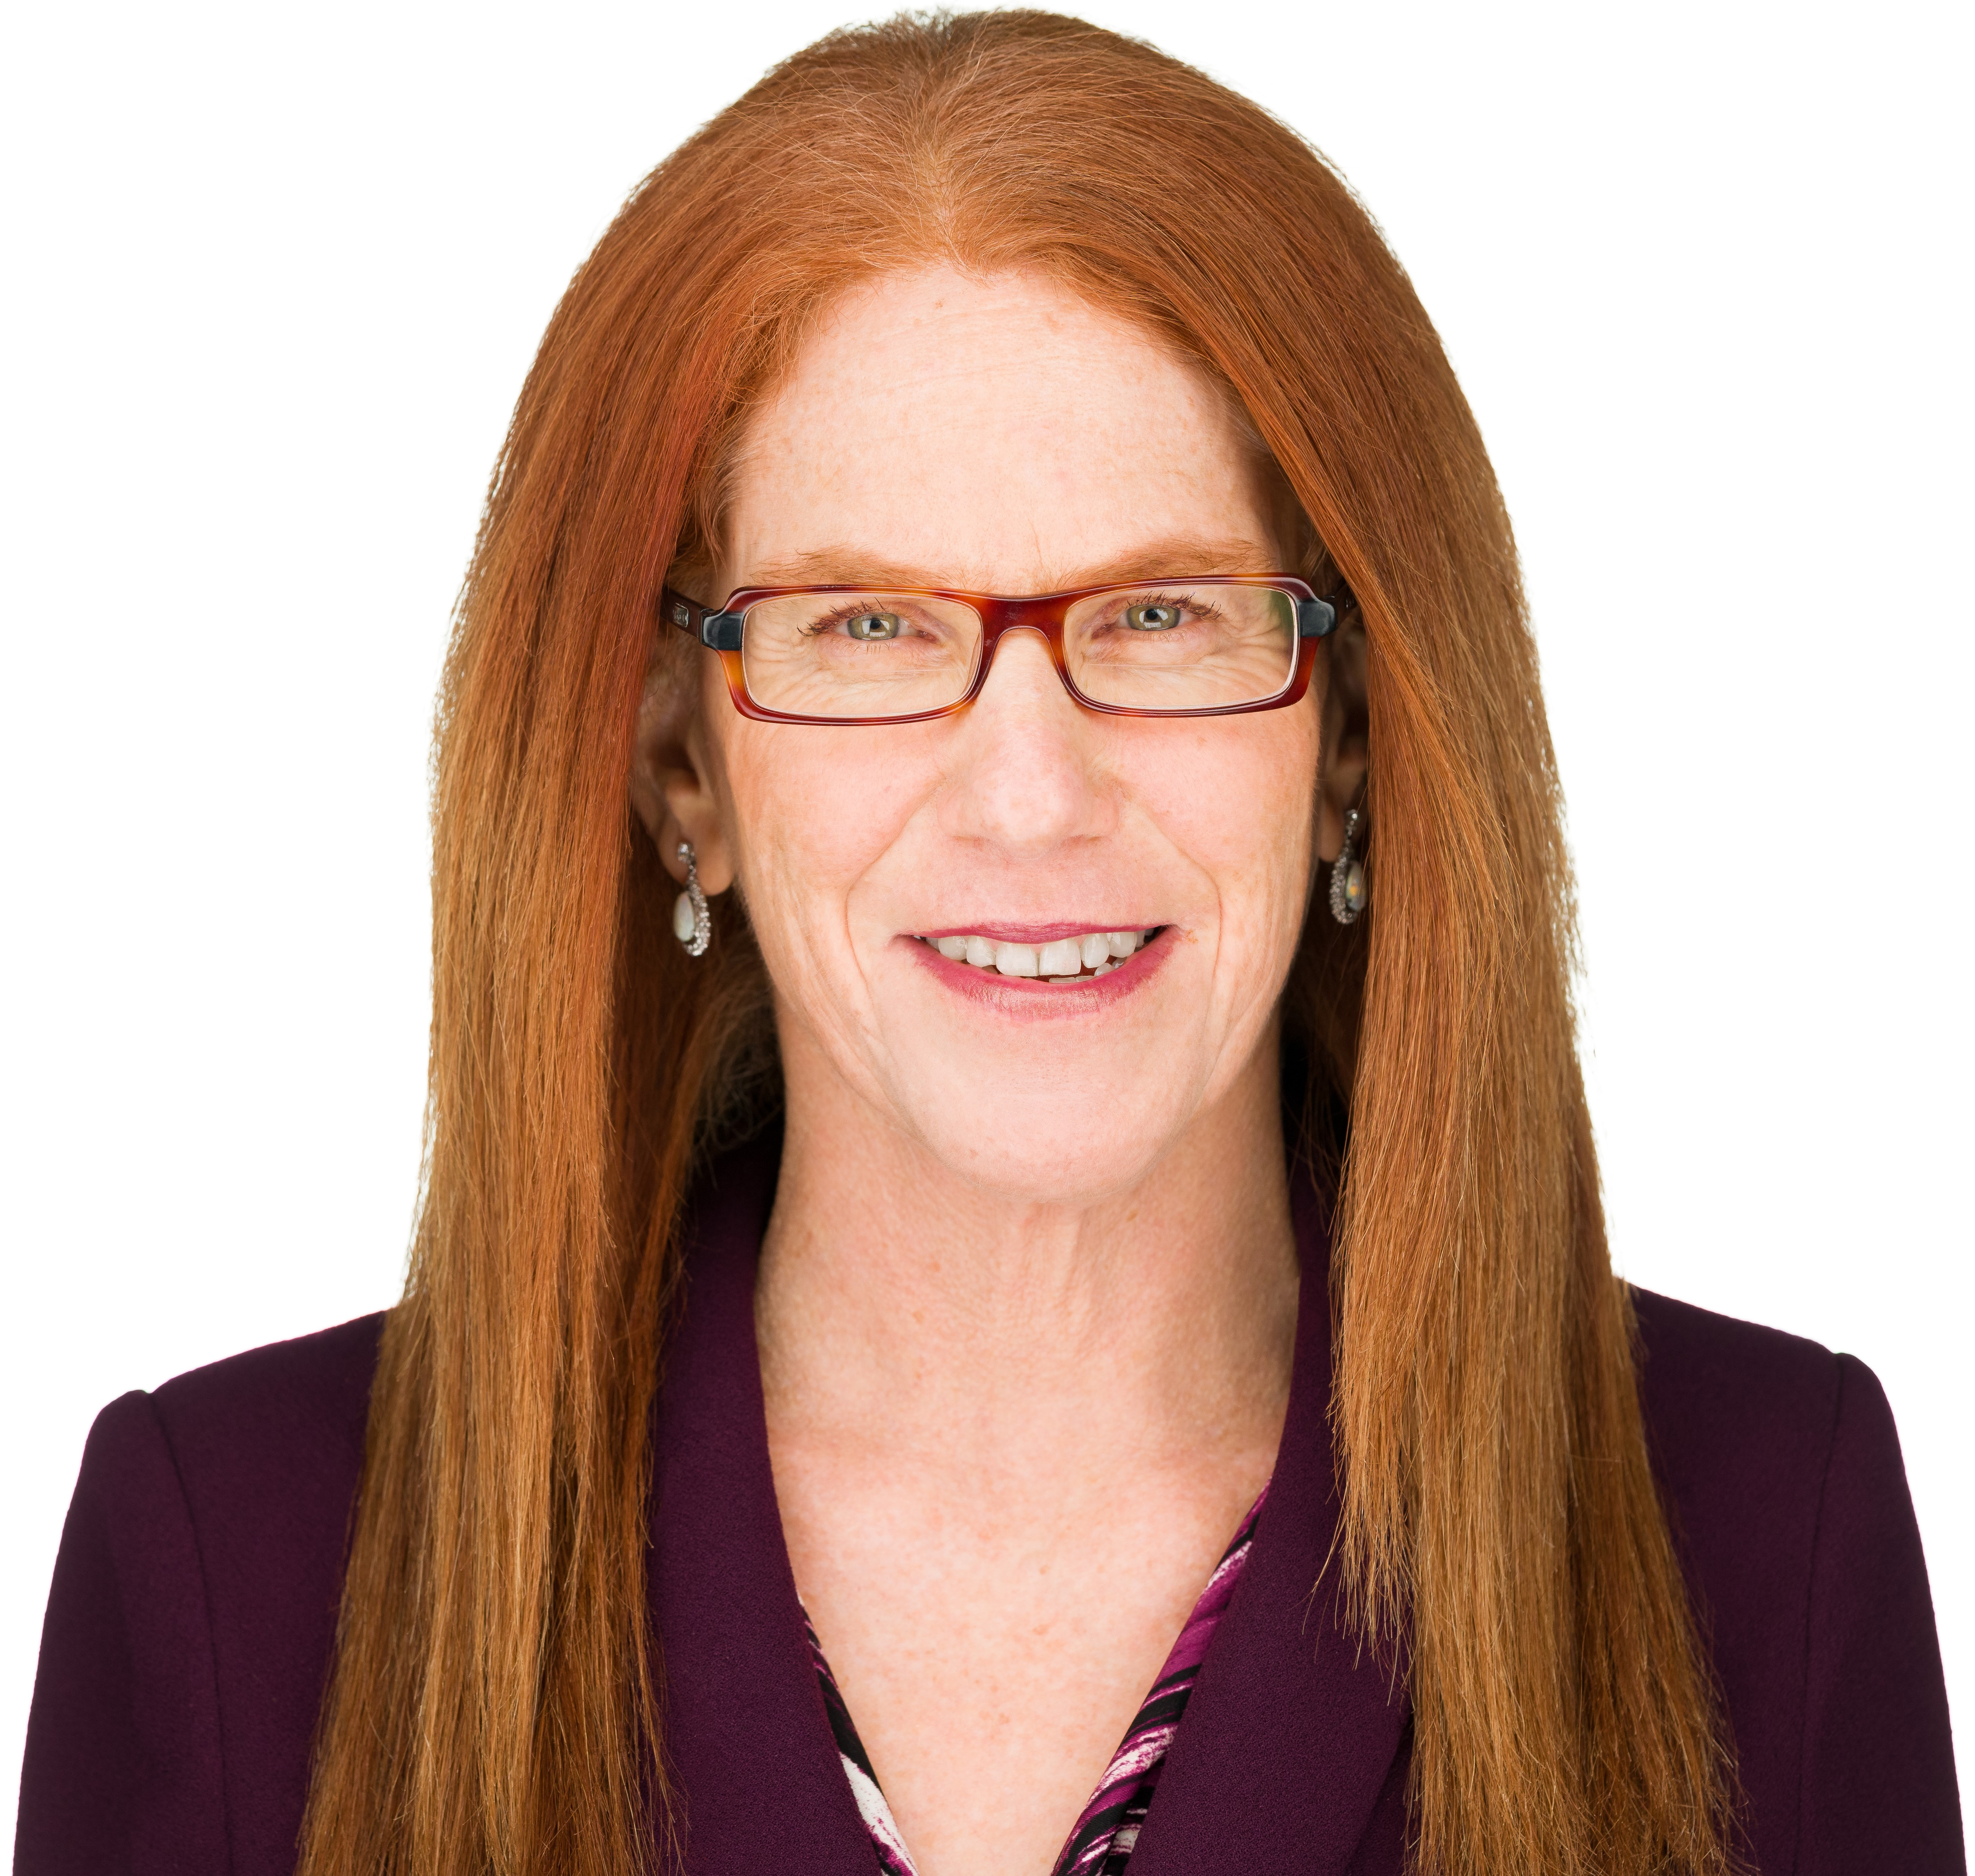 FactRight Appoints Gail Schneck CEO, Announces Ownership Changes